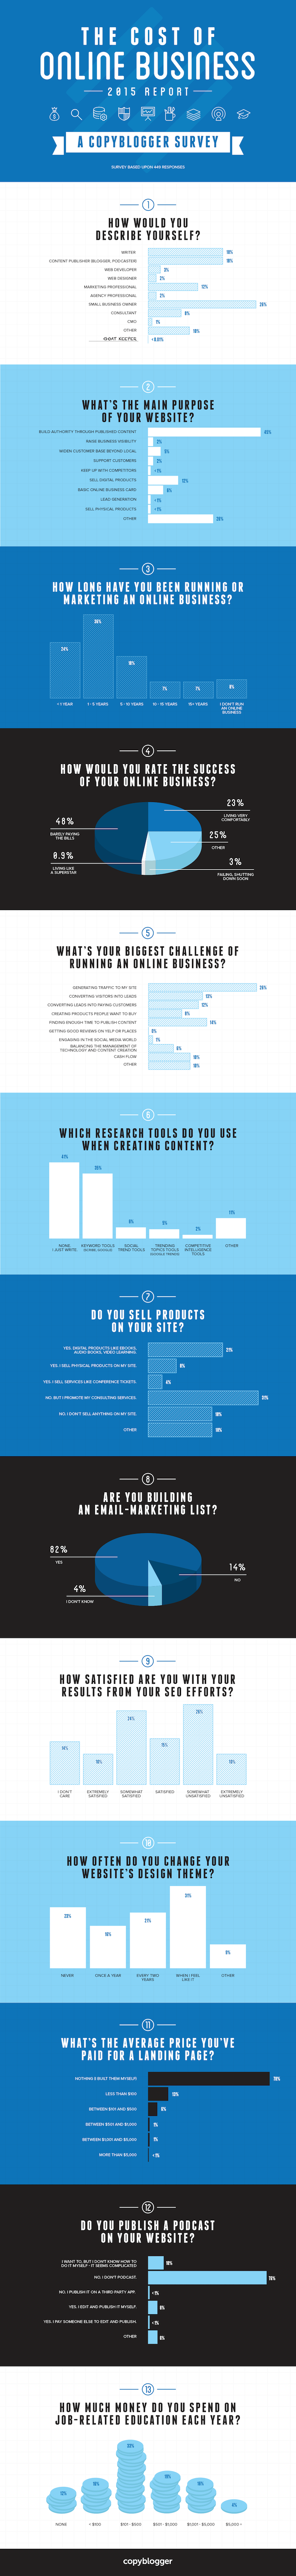 copyblogger-2015-online-business-report-infographic